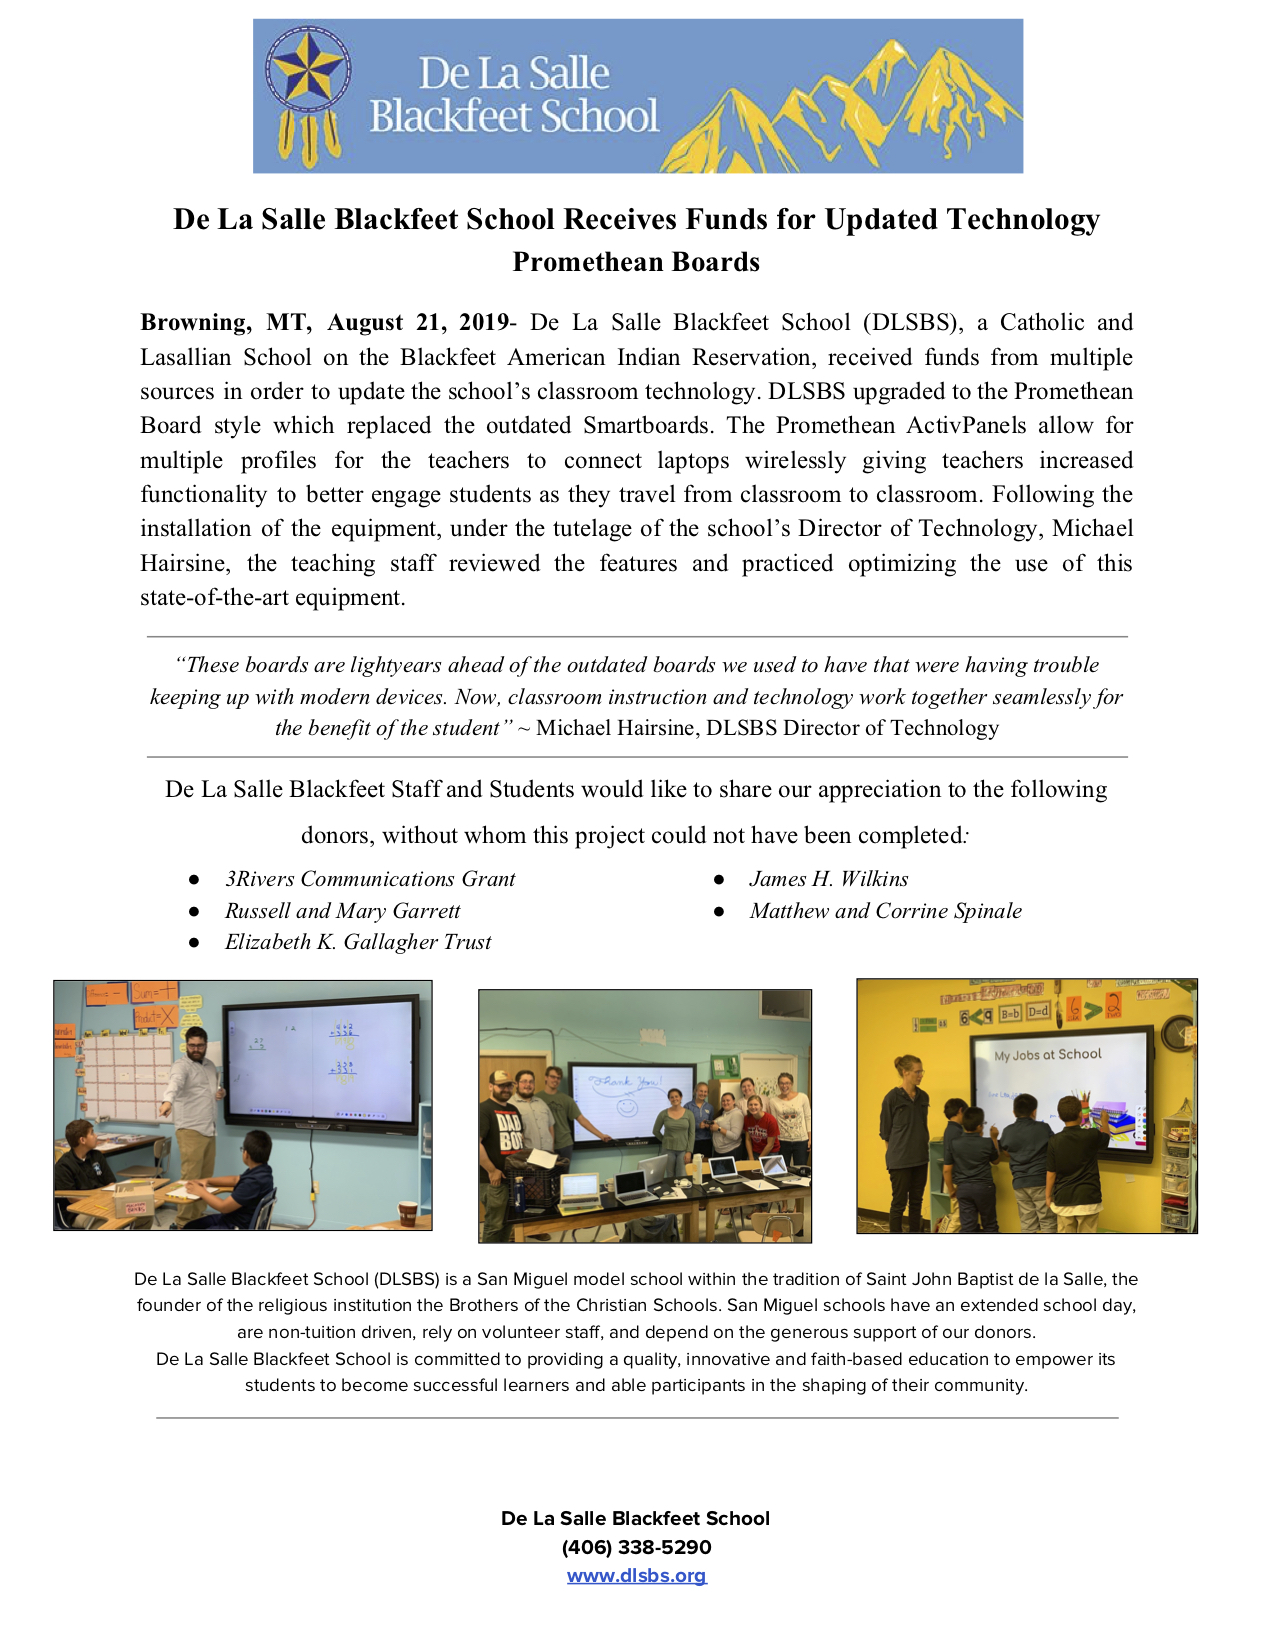 News Release Promethean Board 1